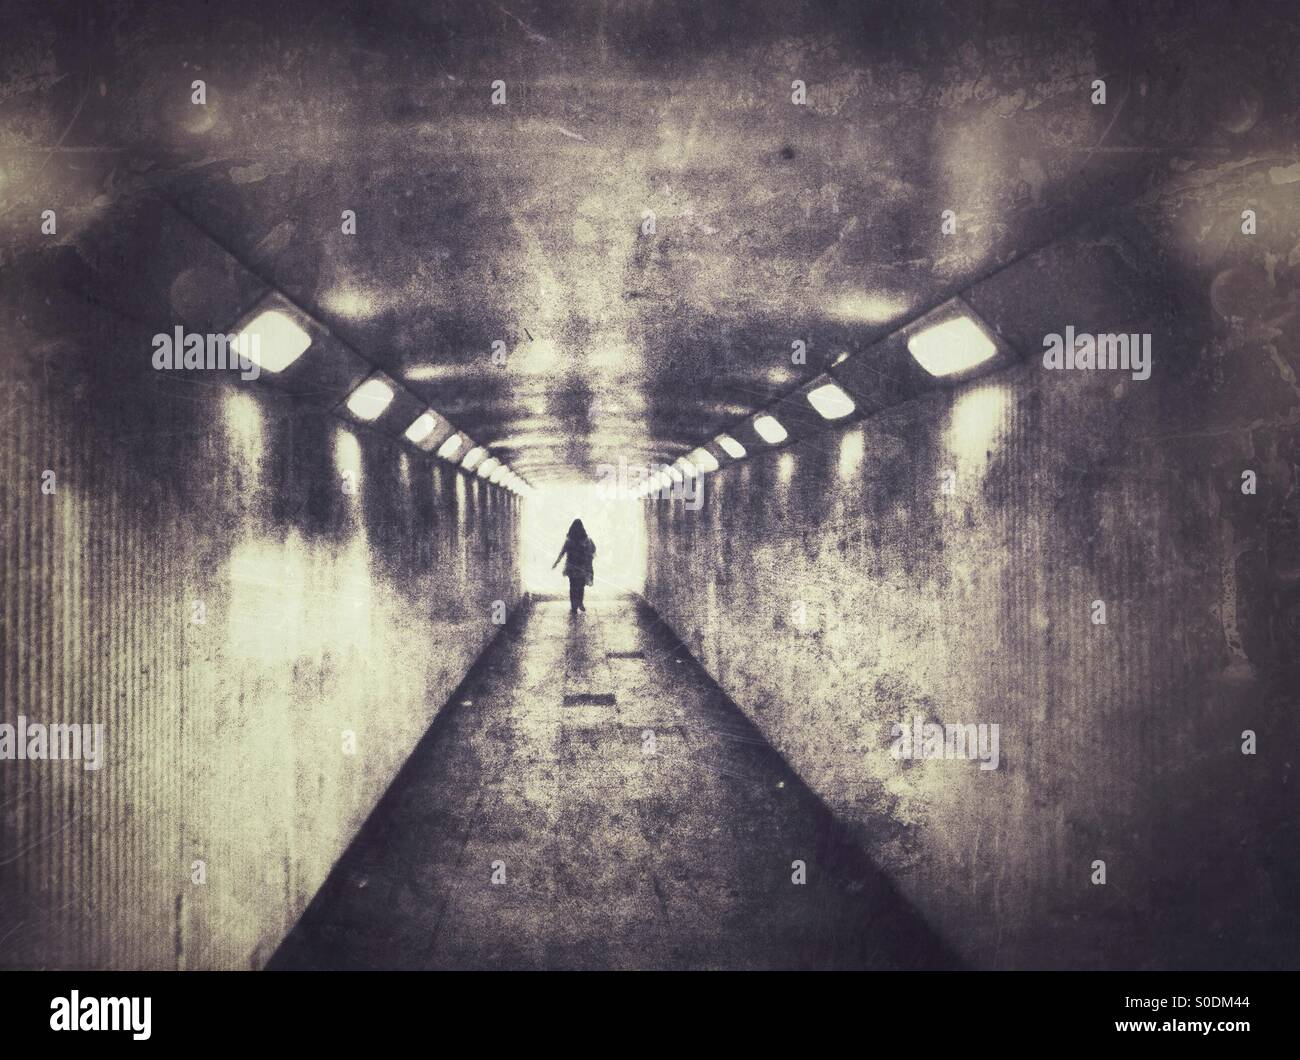 Lone female walking in dark underpass. - Stock Image